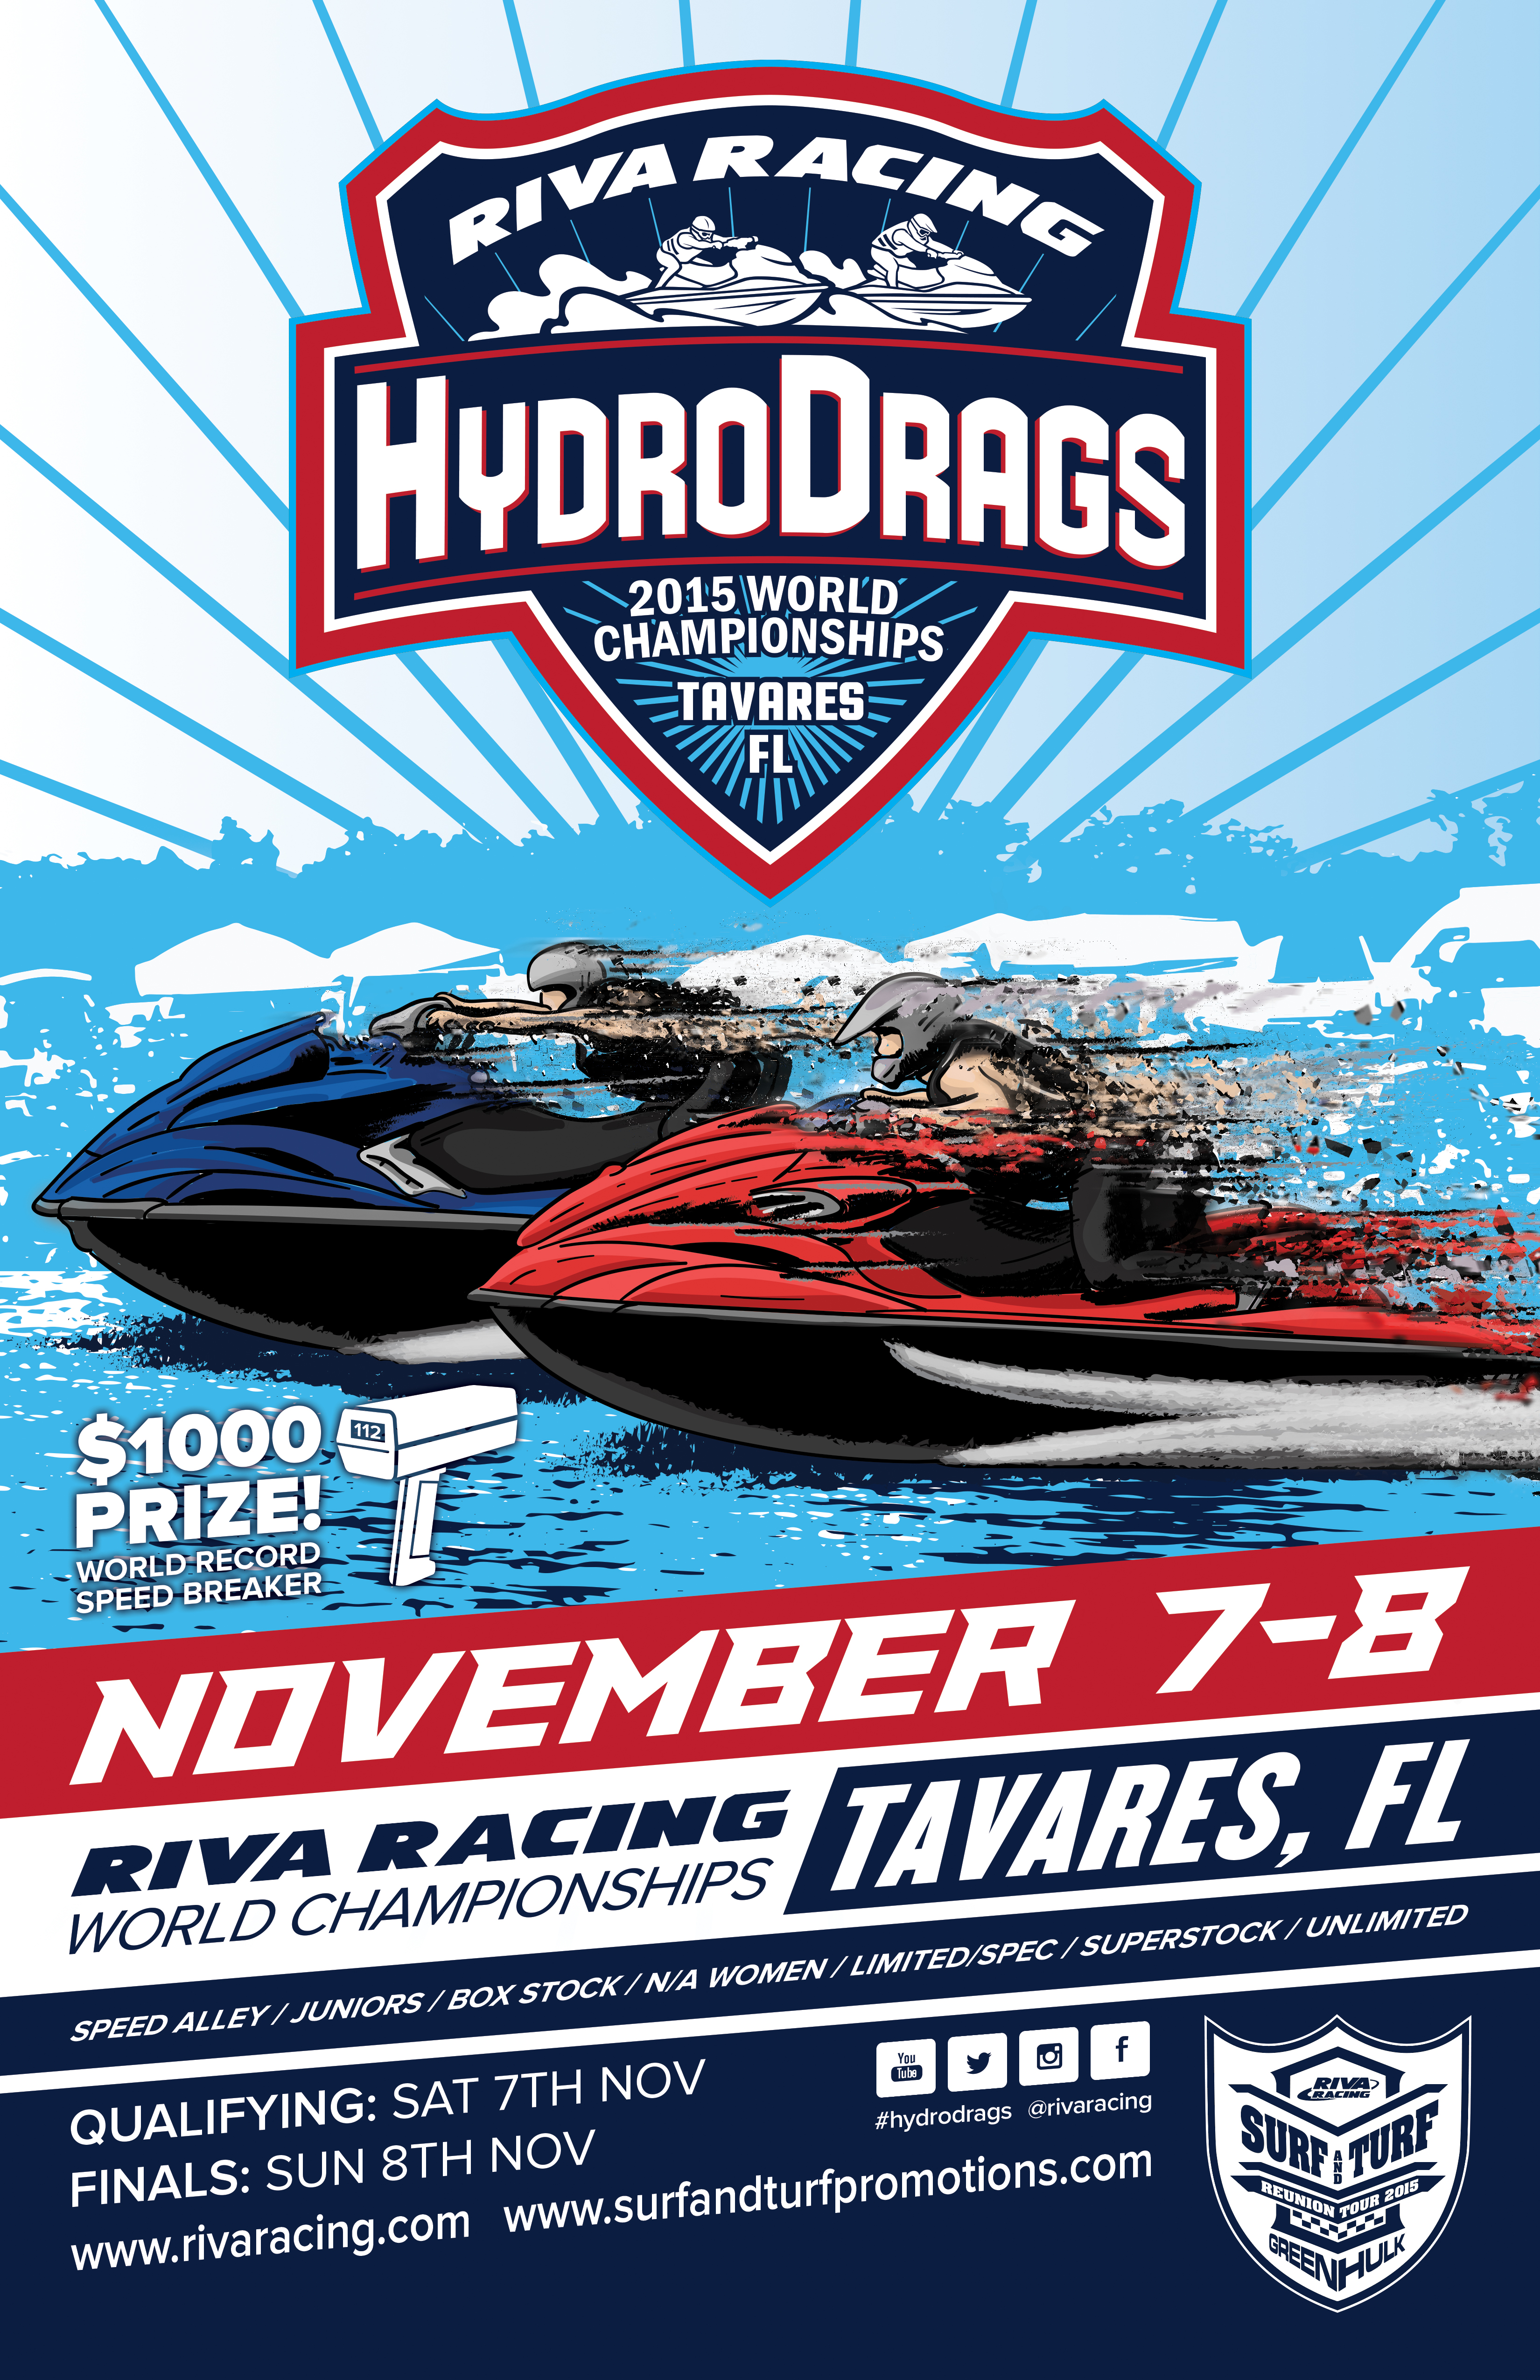 Everything You Need to Know For 2015 RIVA Racing HydroDrag World